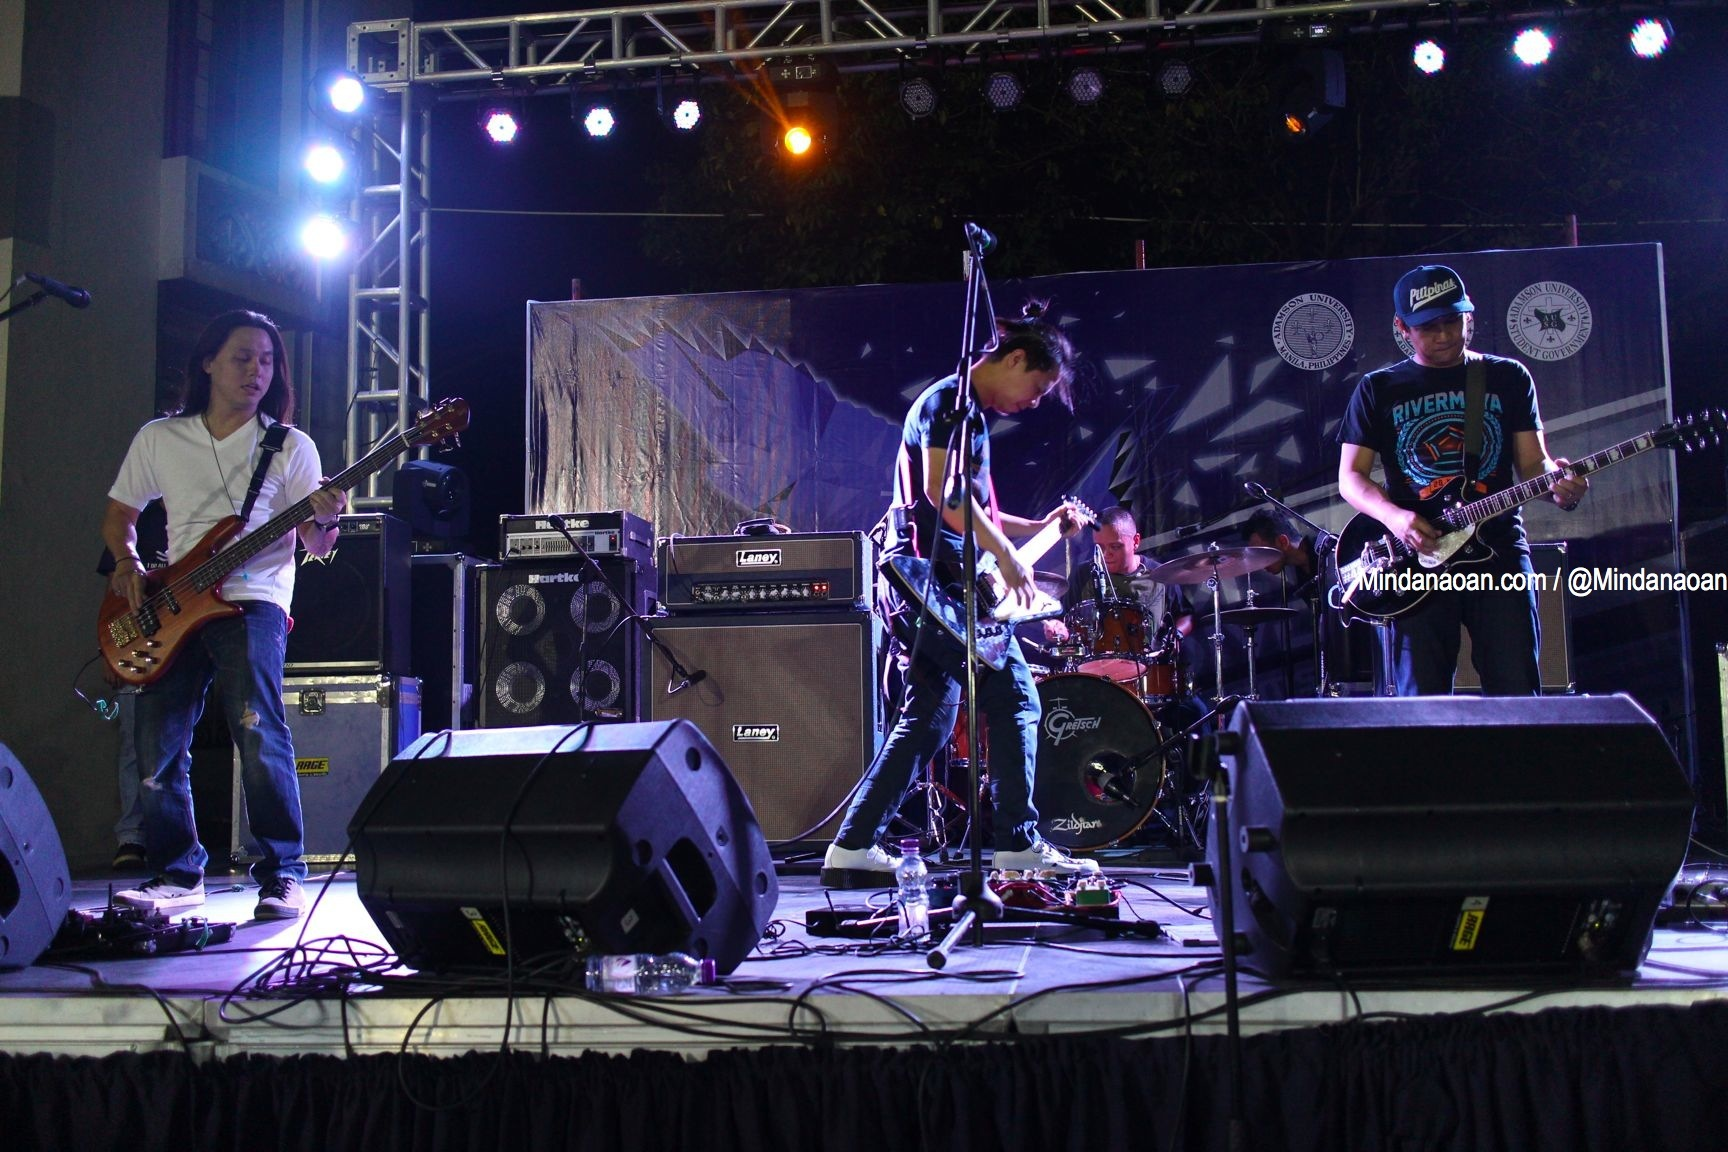 Tagging Along With The New Rivermaya